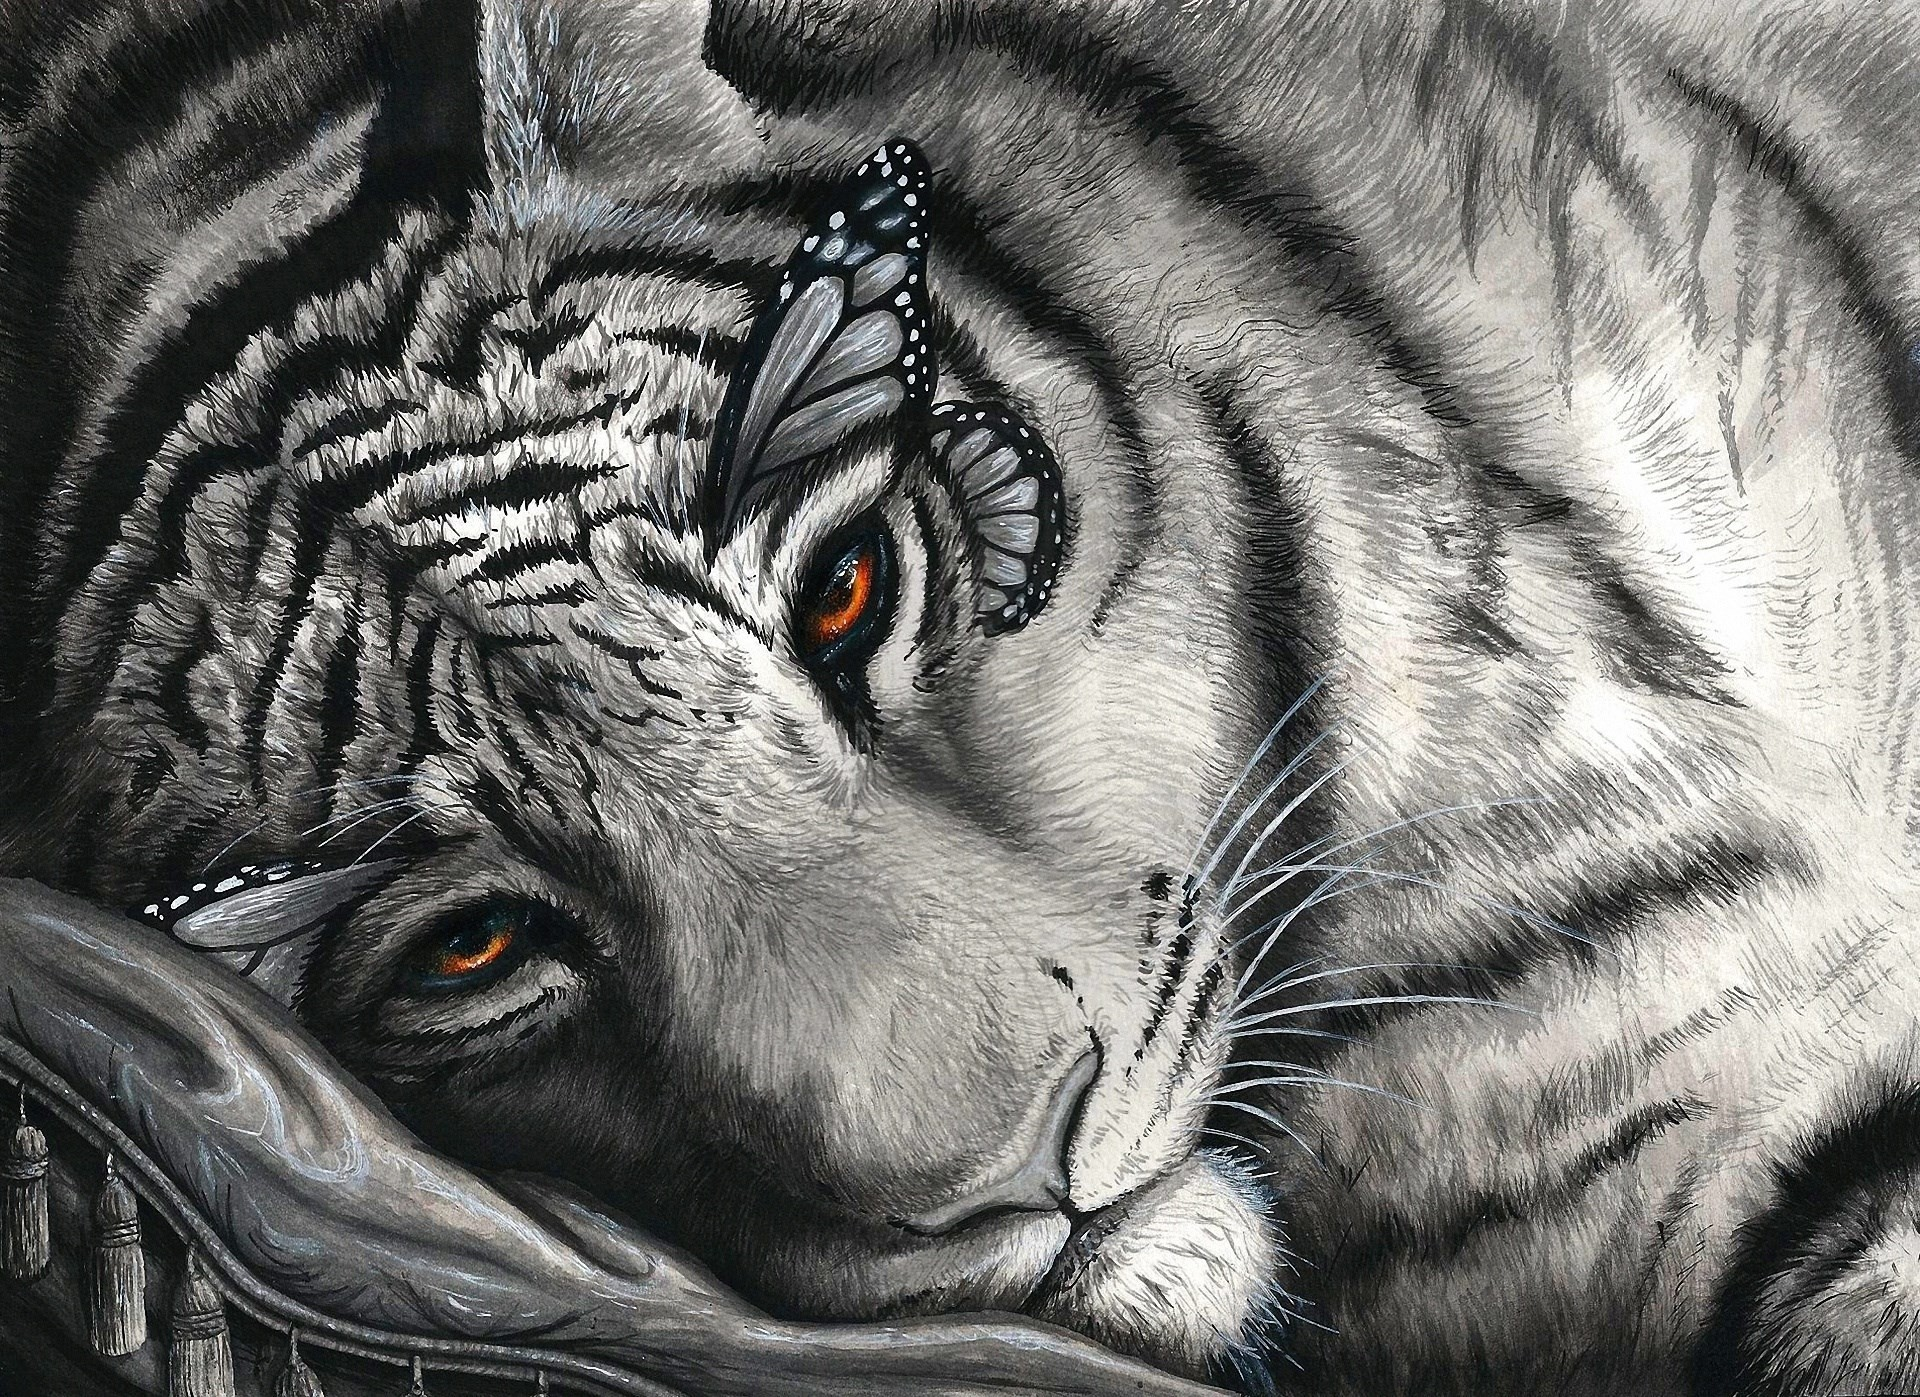 Amazing Wallpaper Marvel White Tiger - 856336-drowning-pool-wallpaper-1920x1397-for-xiaomi  You Should Have_25218.jpg